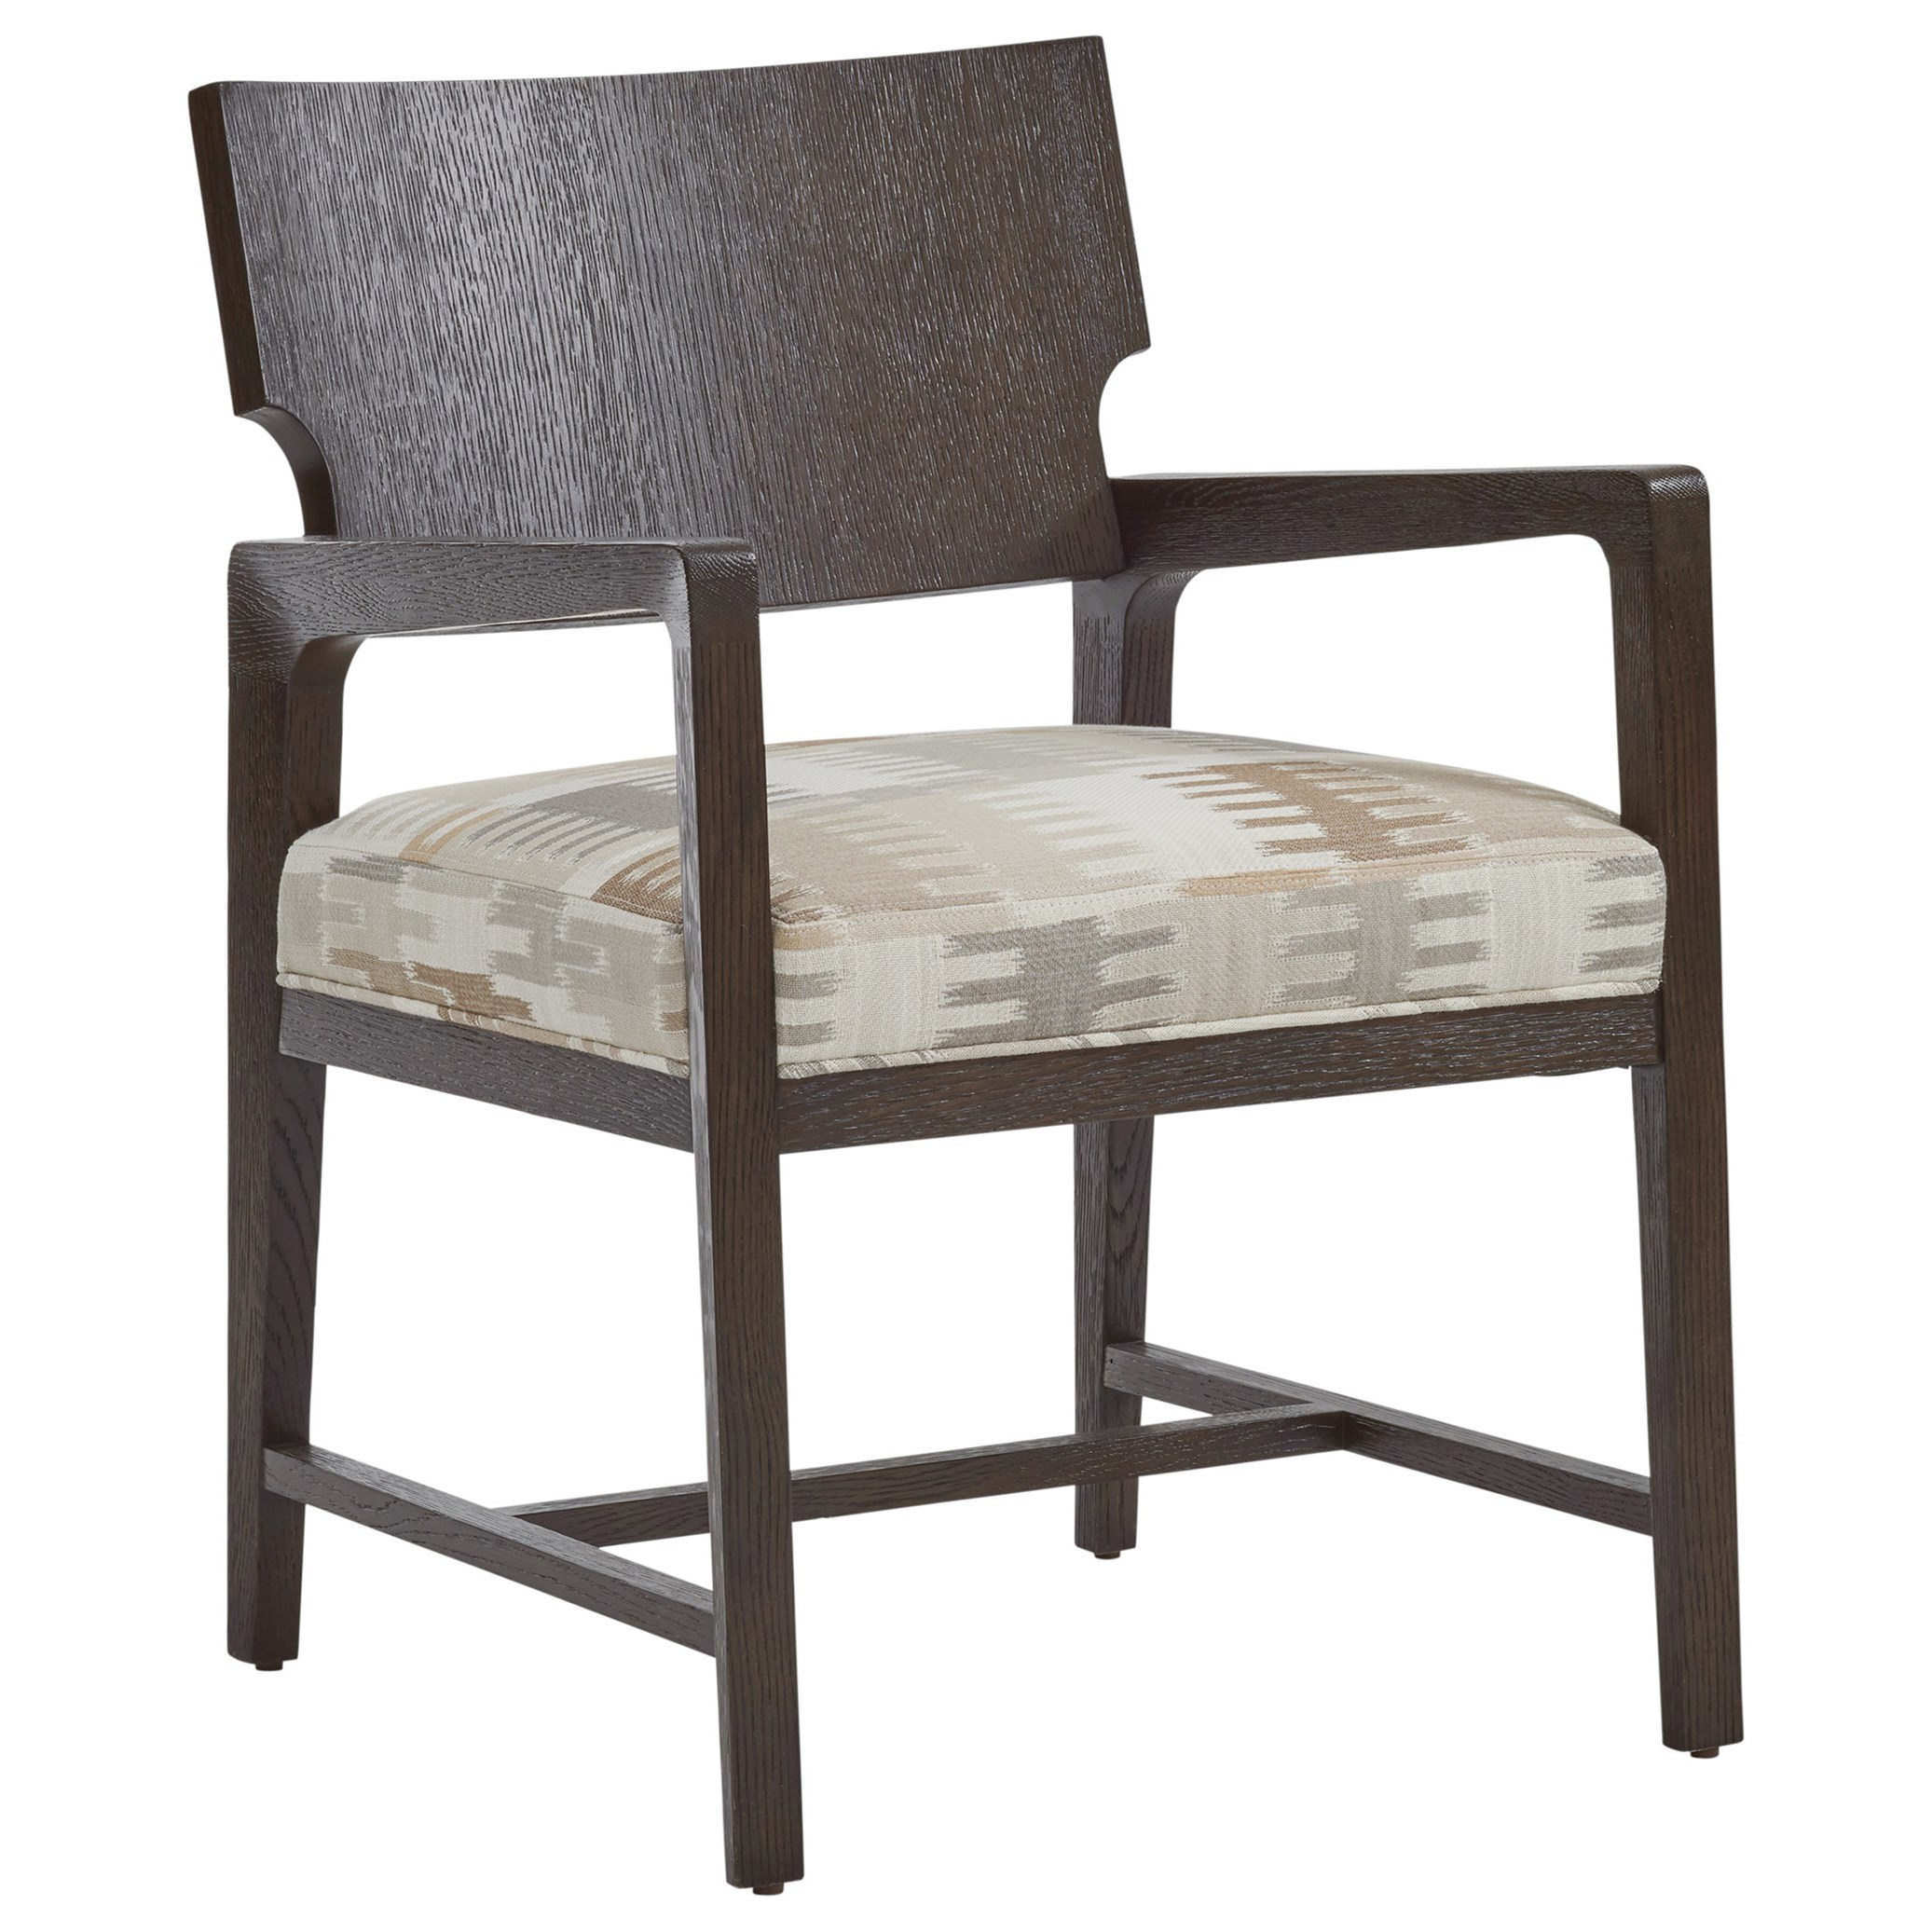 Park City Highland Customizable Dining Arm Chair by Barclay Butera at Baer's Furniture